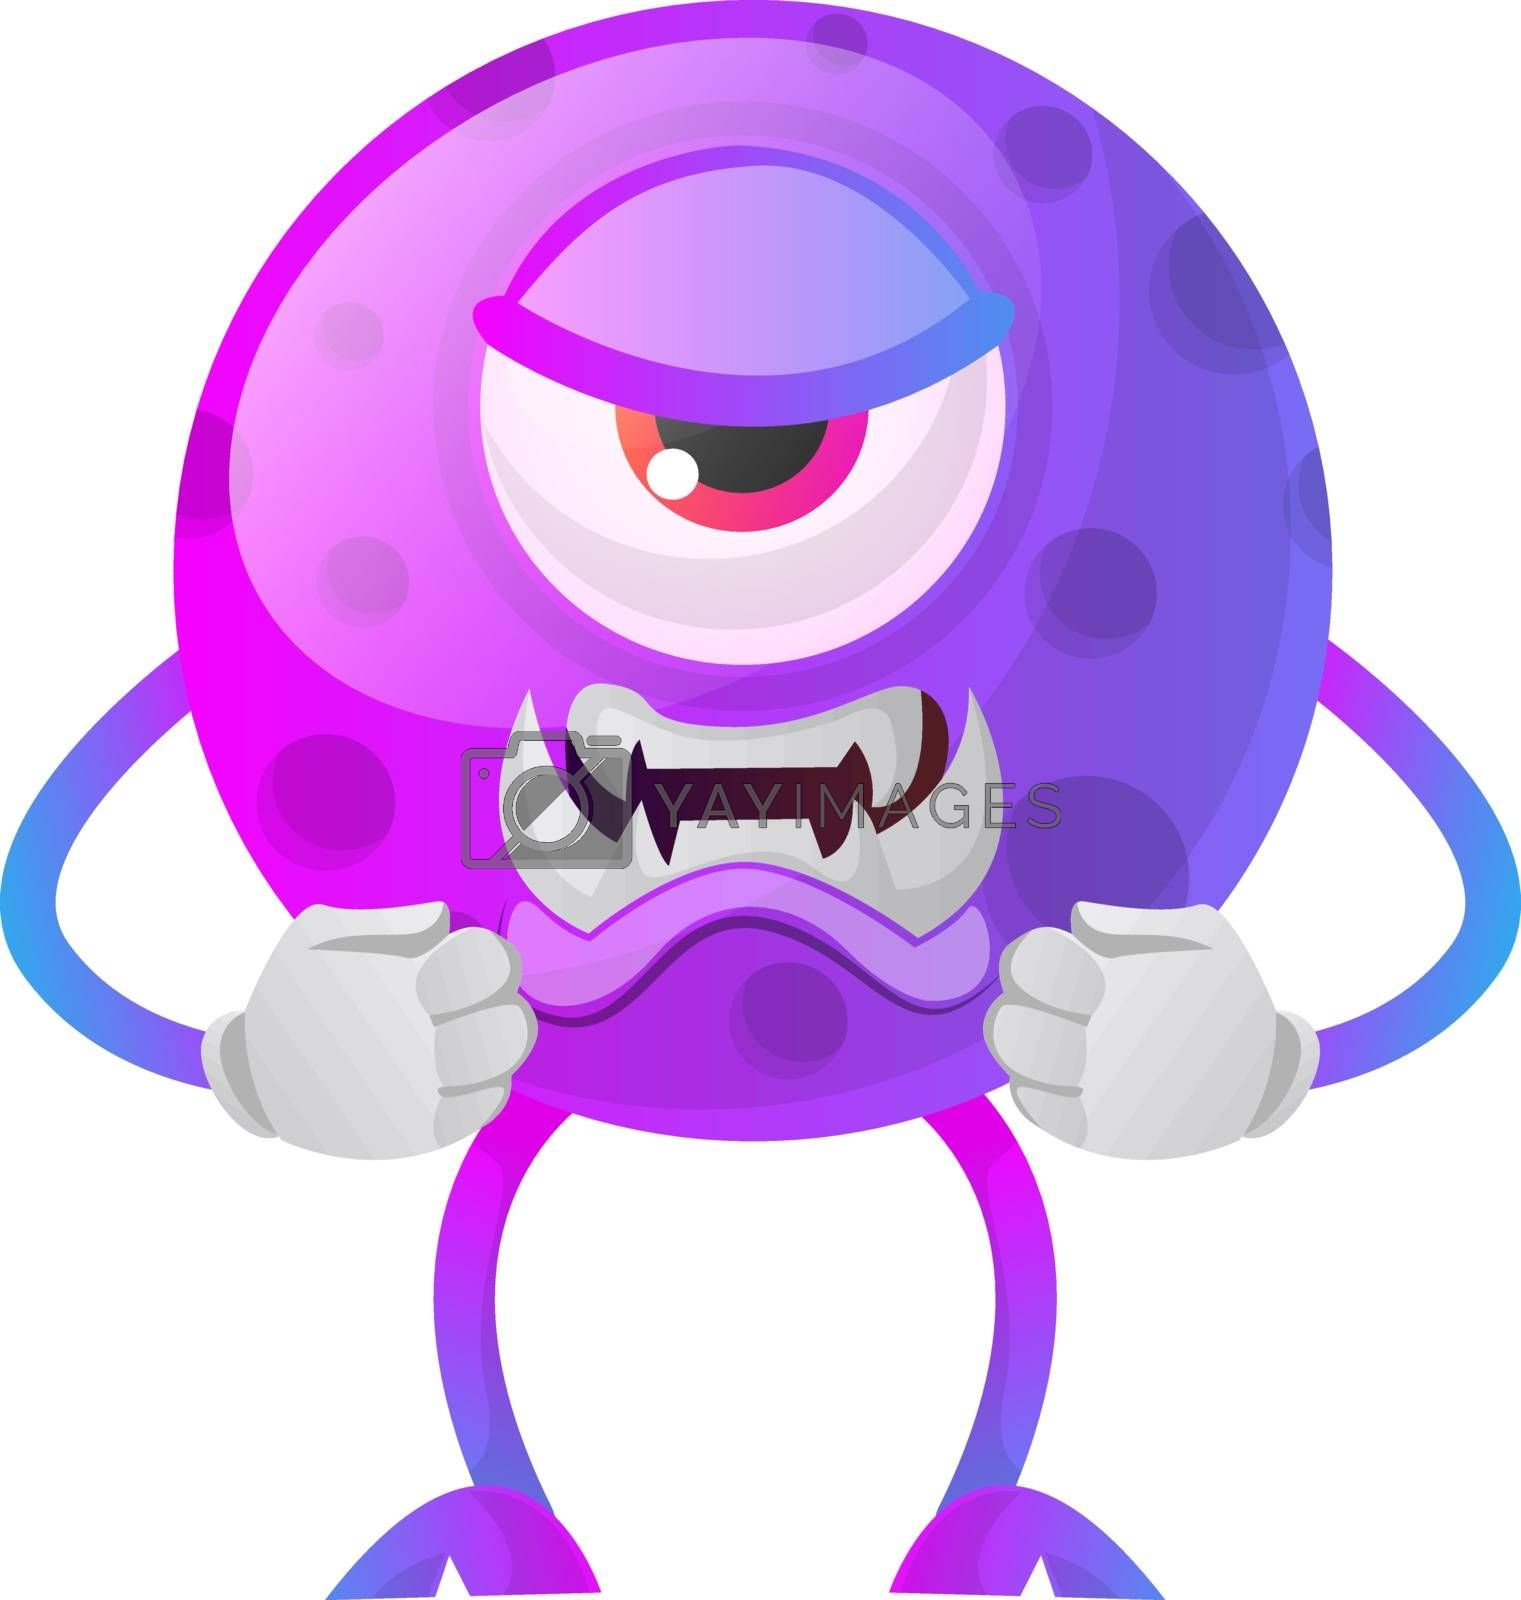 Royalty free image of Angry purple monster illustration vector on white background by Morphart